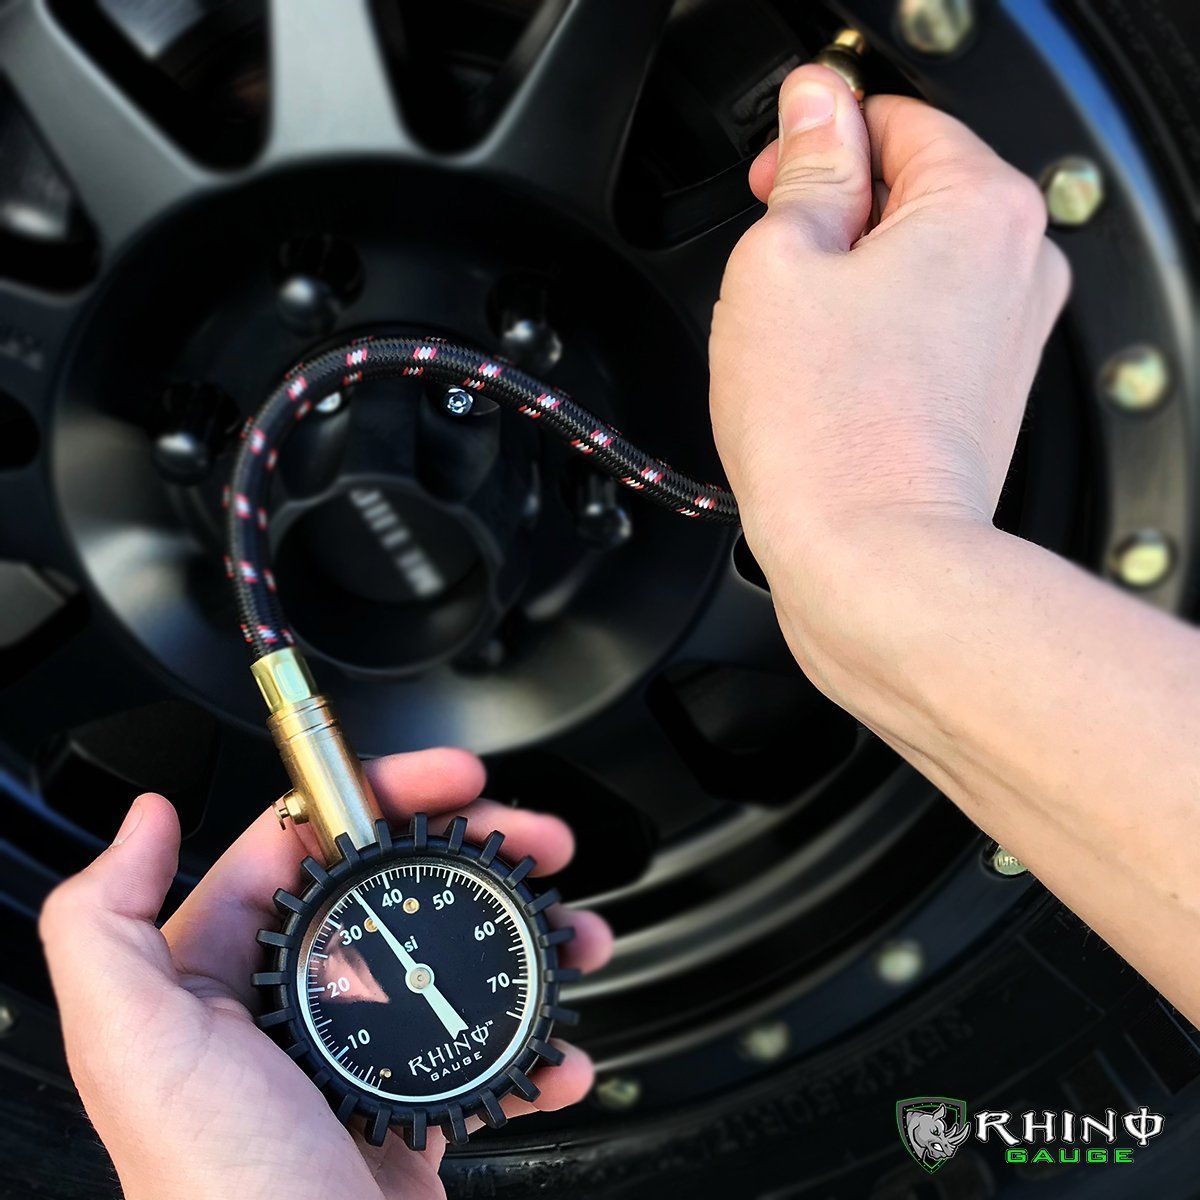 Motorcycle Truck Premium Braided Hose Best for Any Car 0-75 PSI Large 2 Easy Read Glow Dial RV Solid Brass Hardware - Certified ANSI B40.1 Accurate Rhino USA Heavy Duty Tire Pressure Gauge